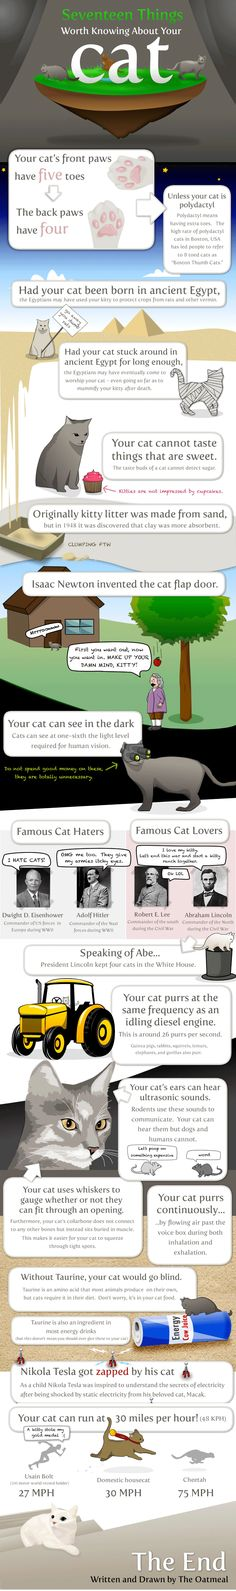 This infographic provides seventeen fun and interesting facts about cats. Facts include, information such as cats not being able to see in the dark an